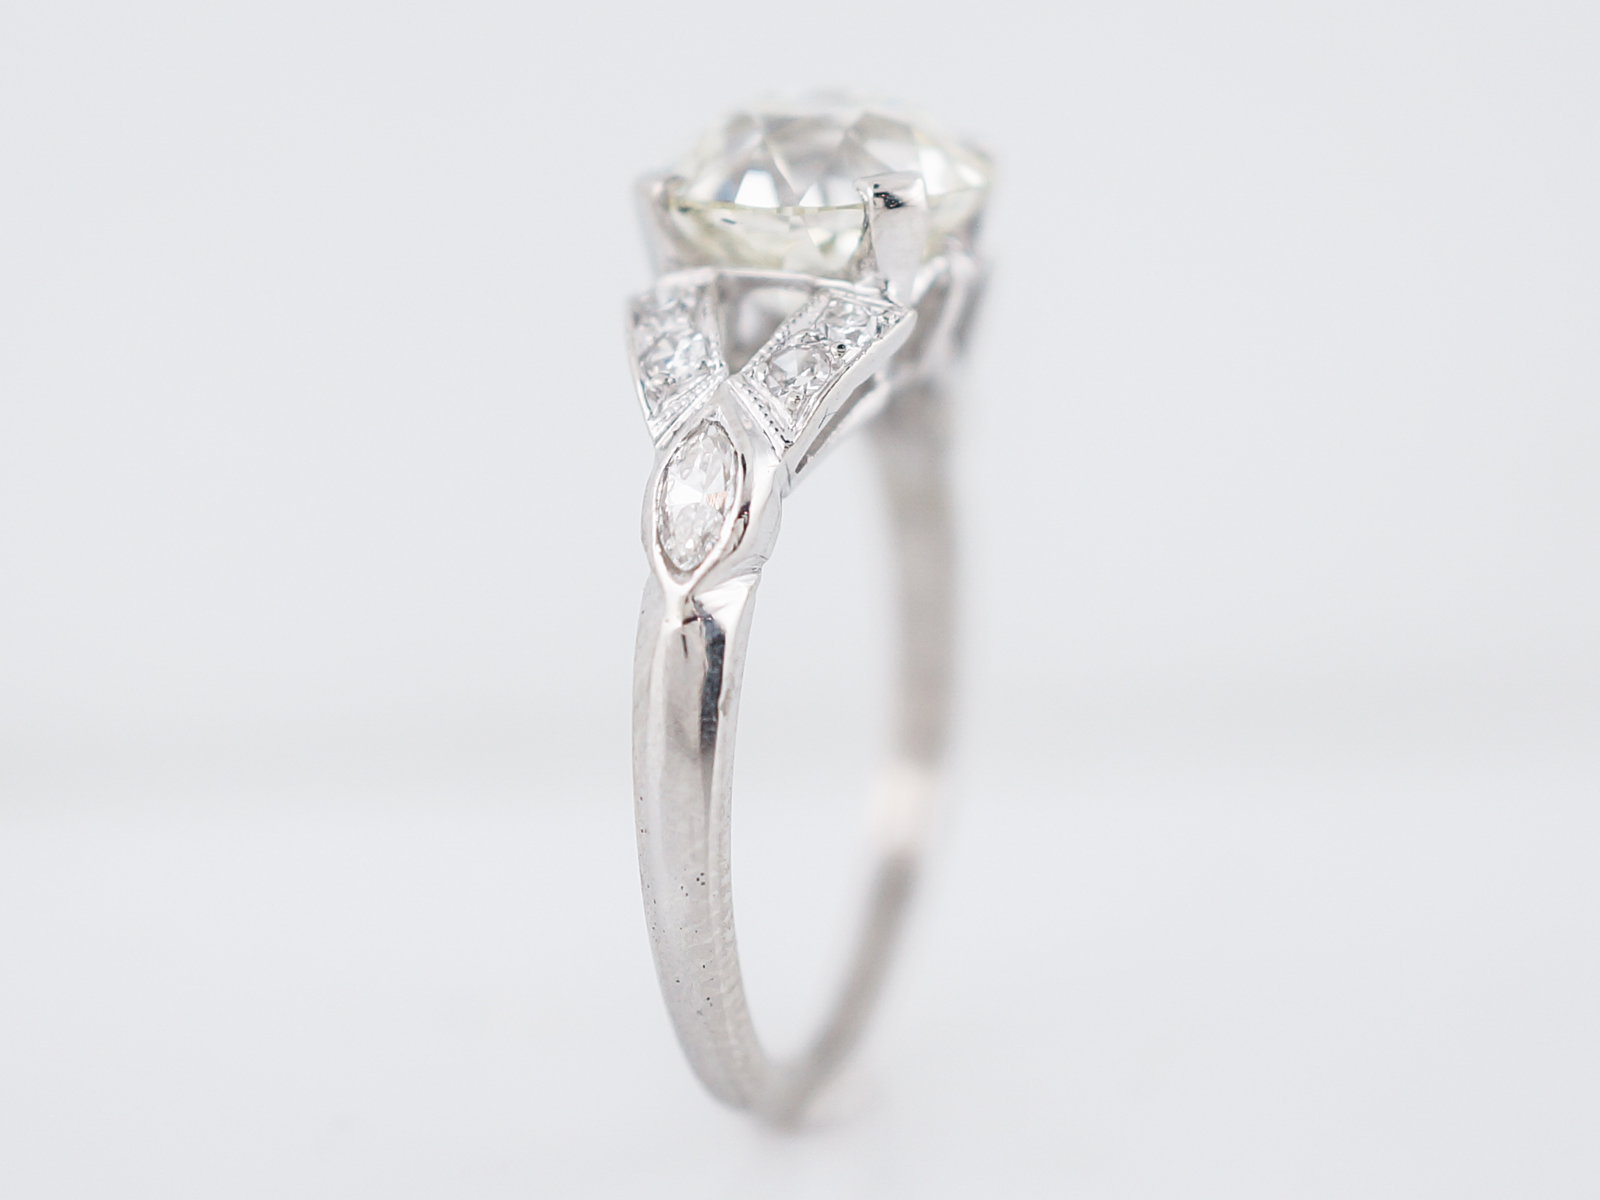 Antique Engagement Ring Art Deco 2.21 Old European Cut Diamond in Platinum-5